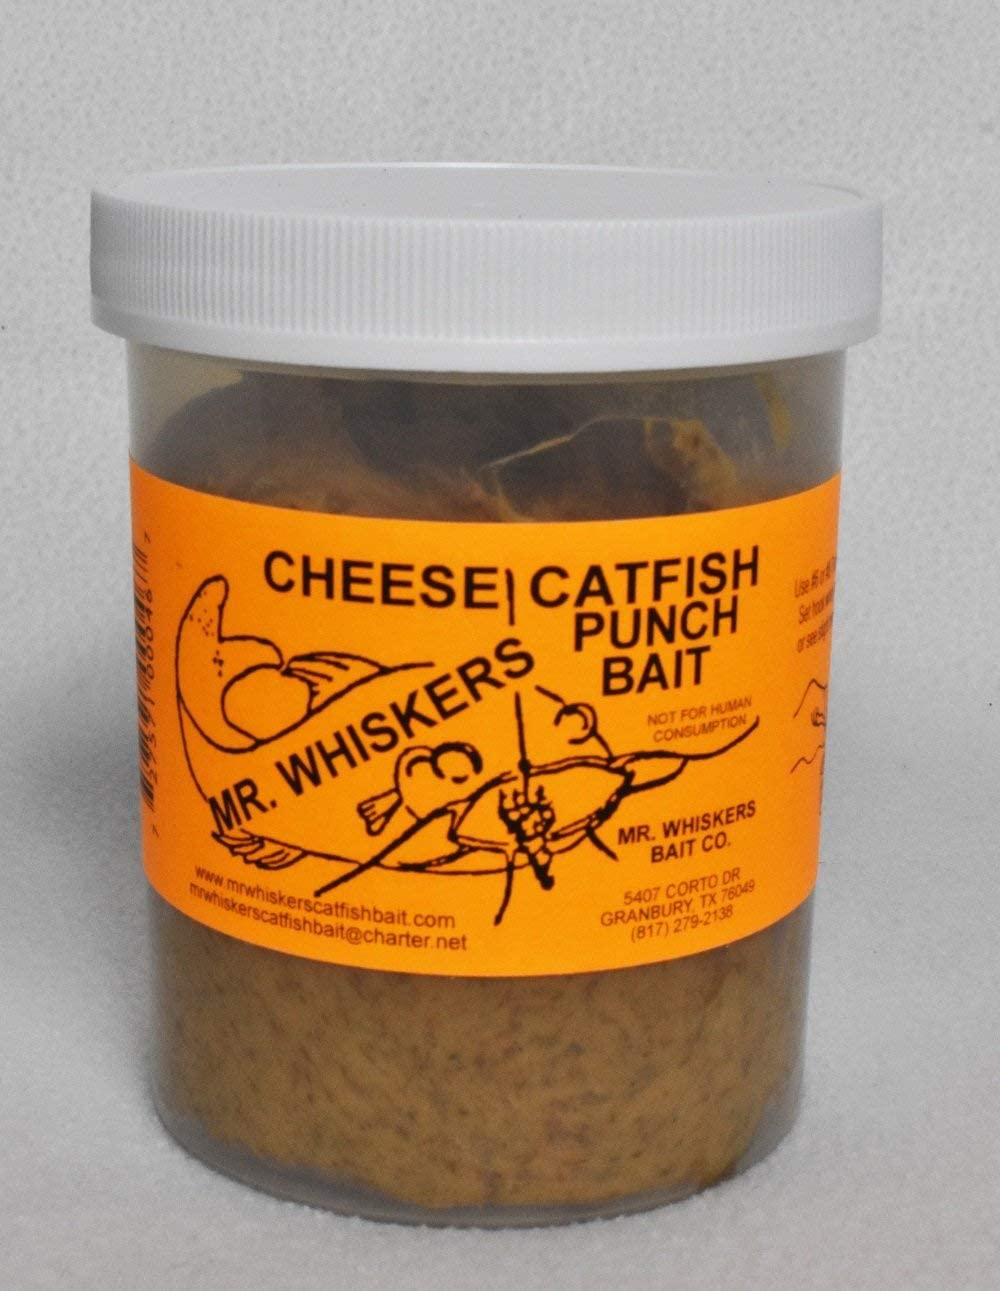 Mr. Whiskers Cheese Catfish Punch Bait - Pint